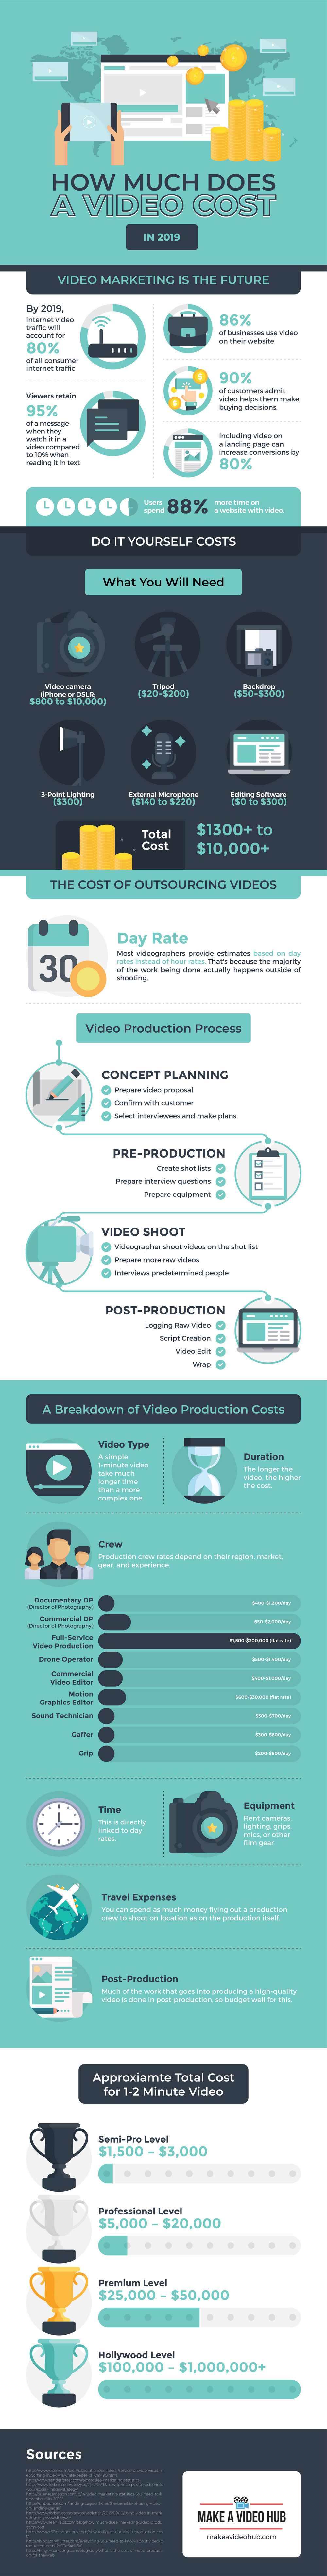 How Much Does a Video Cost (A Detailed Video Production Cost Blueprint)